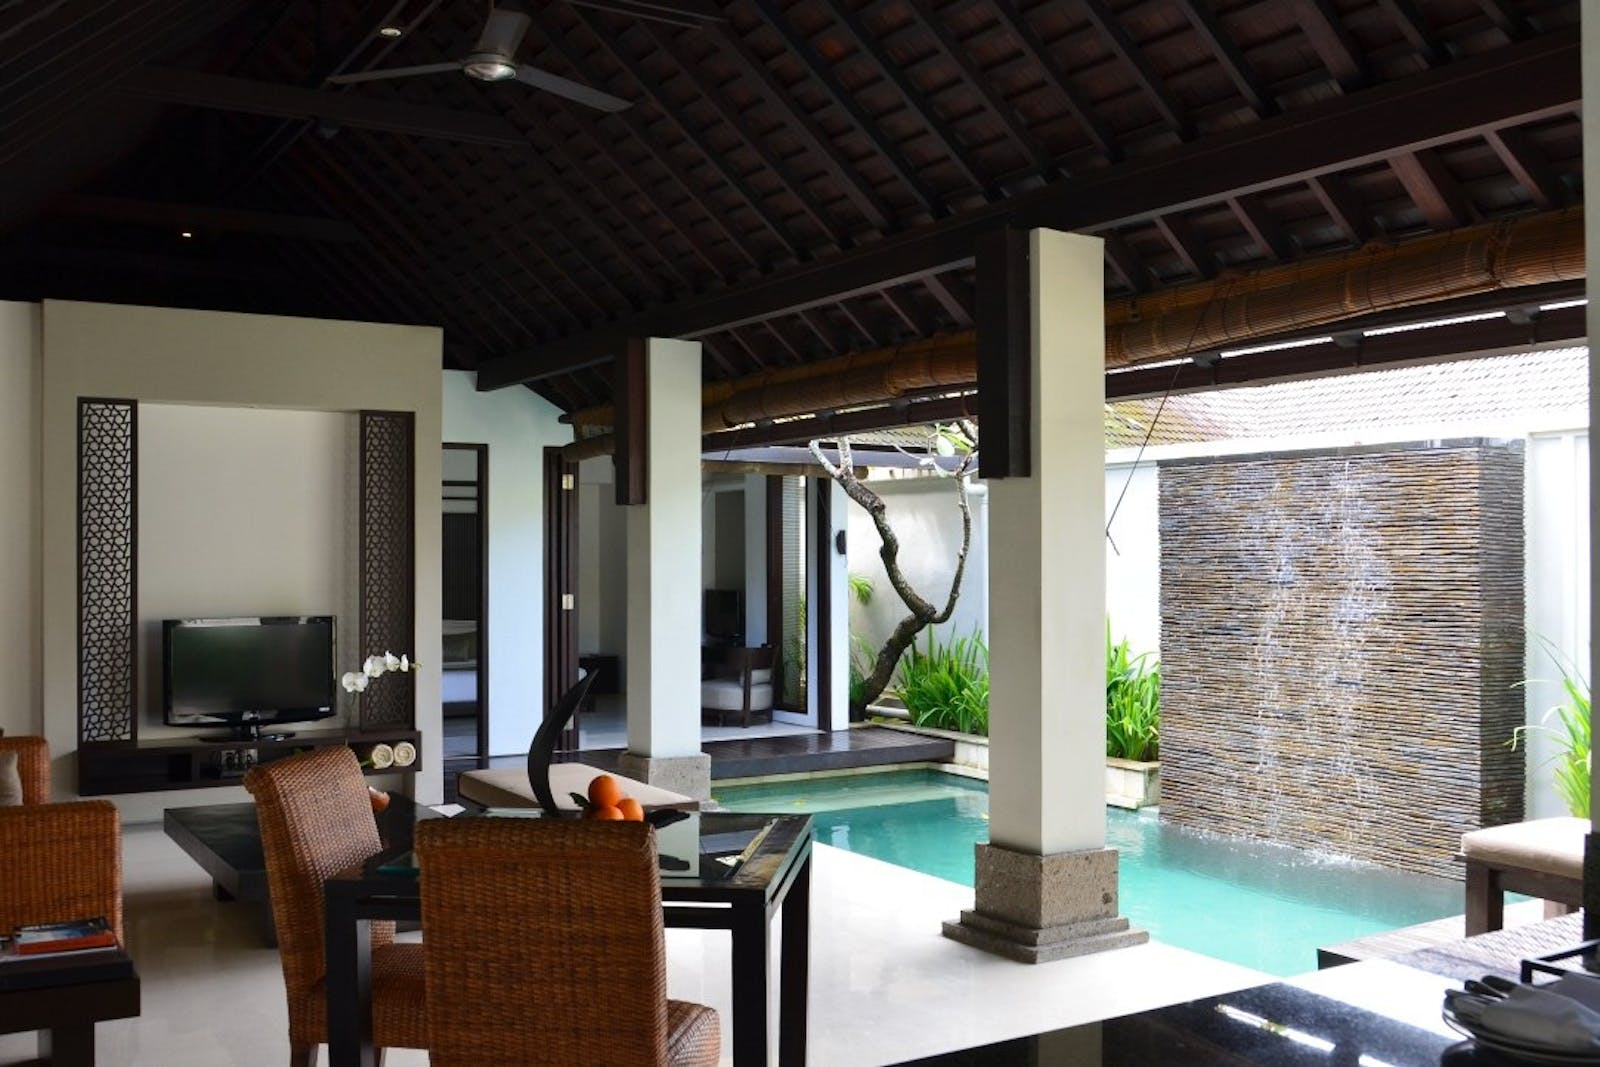 Pool Villa at The Amala, Bali